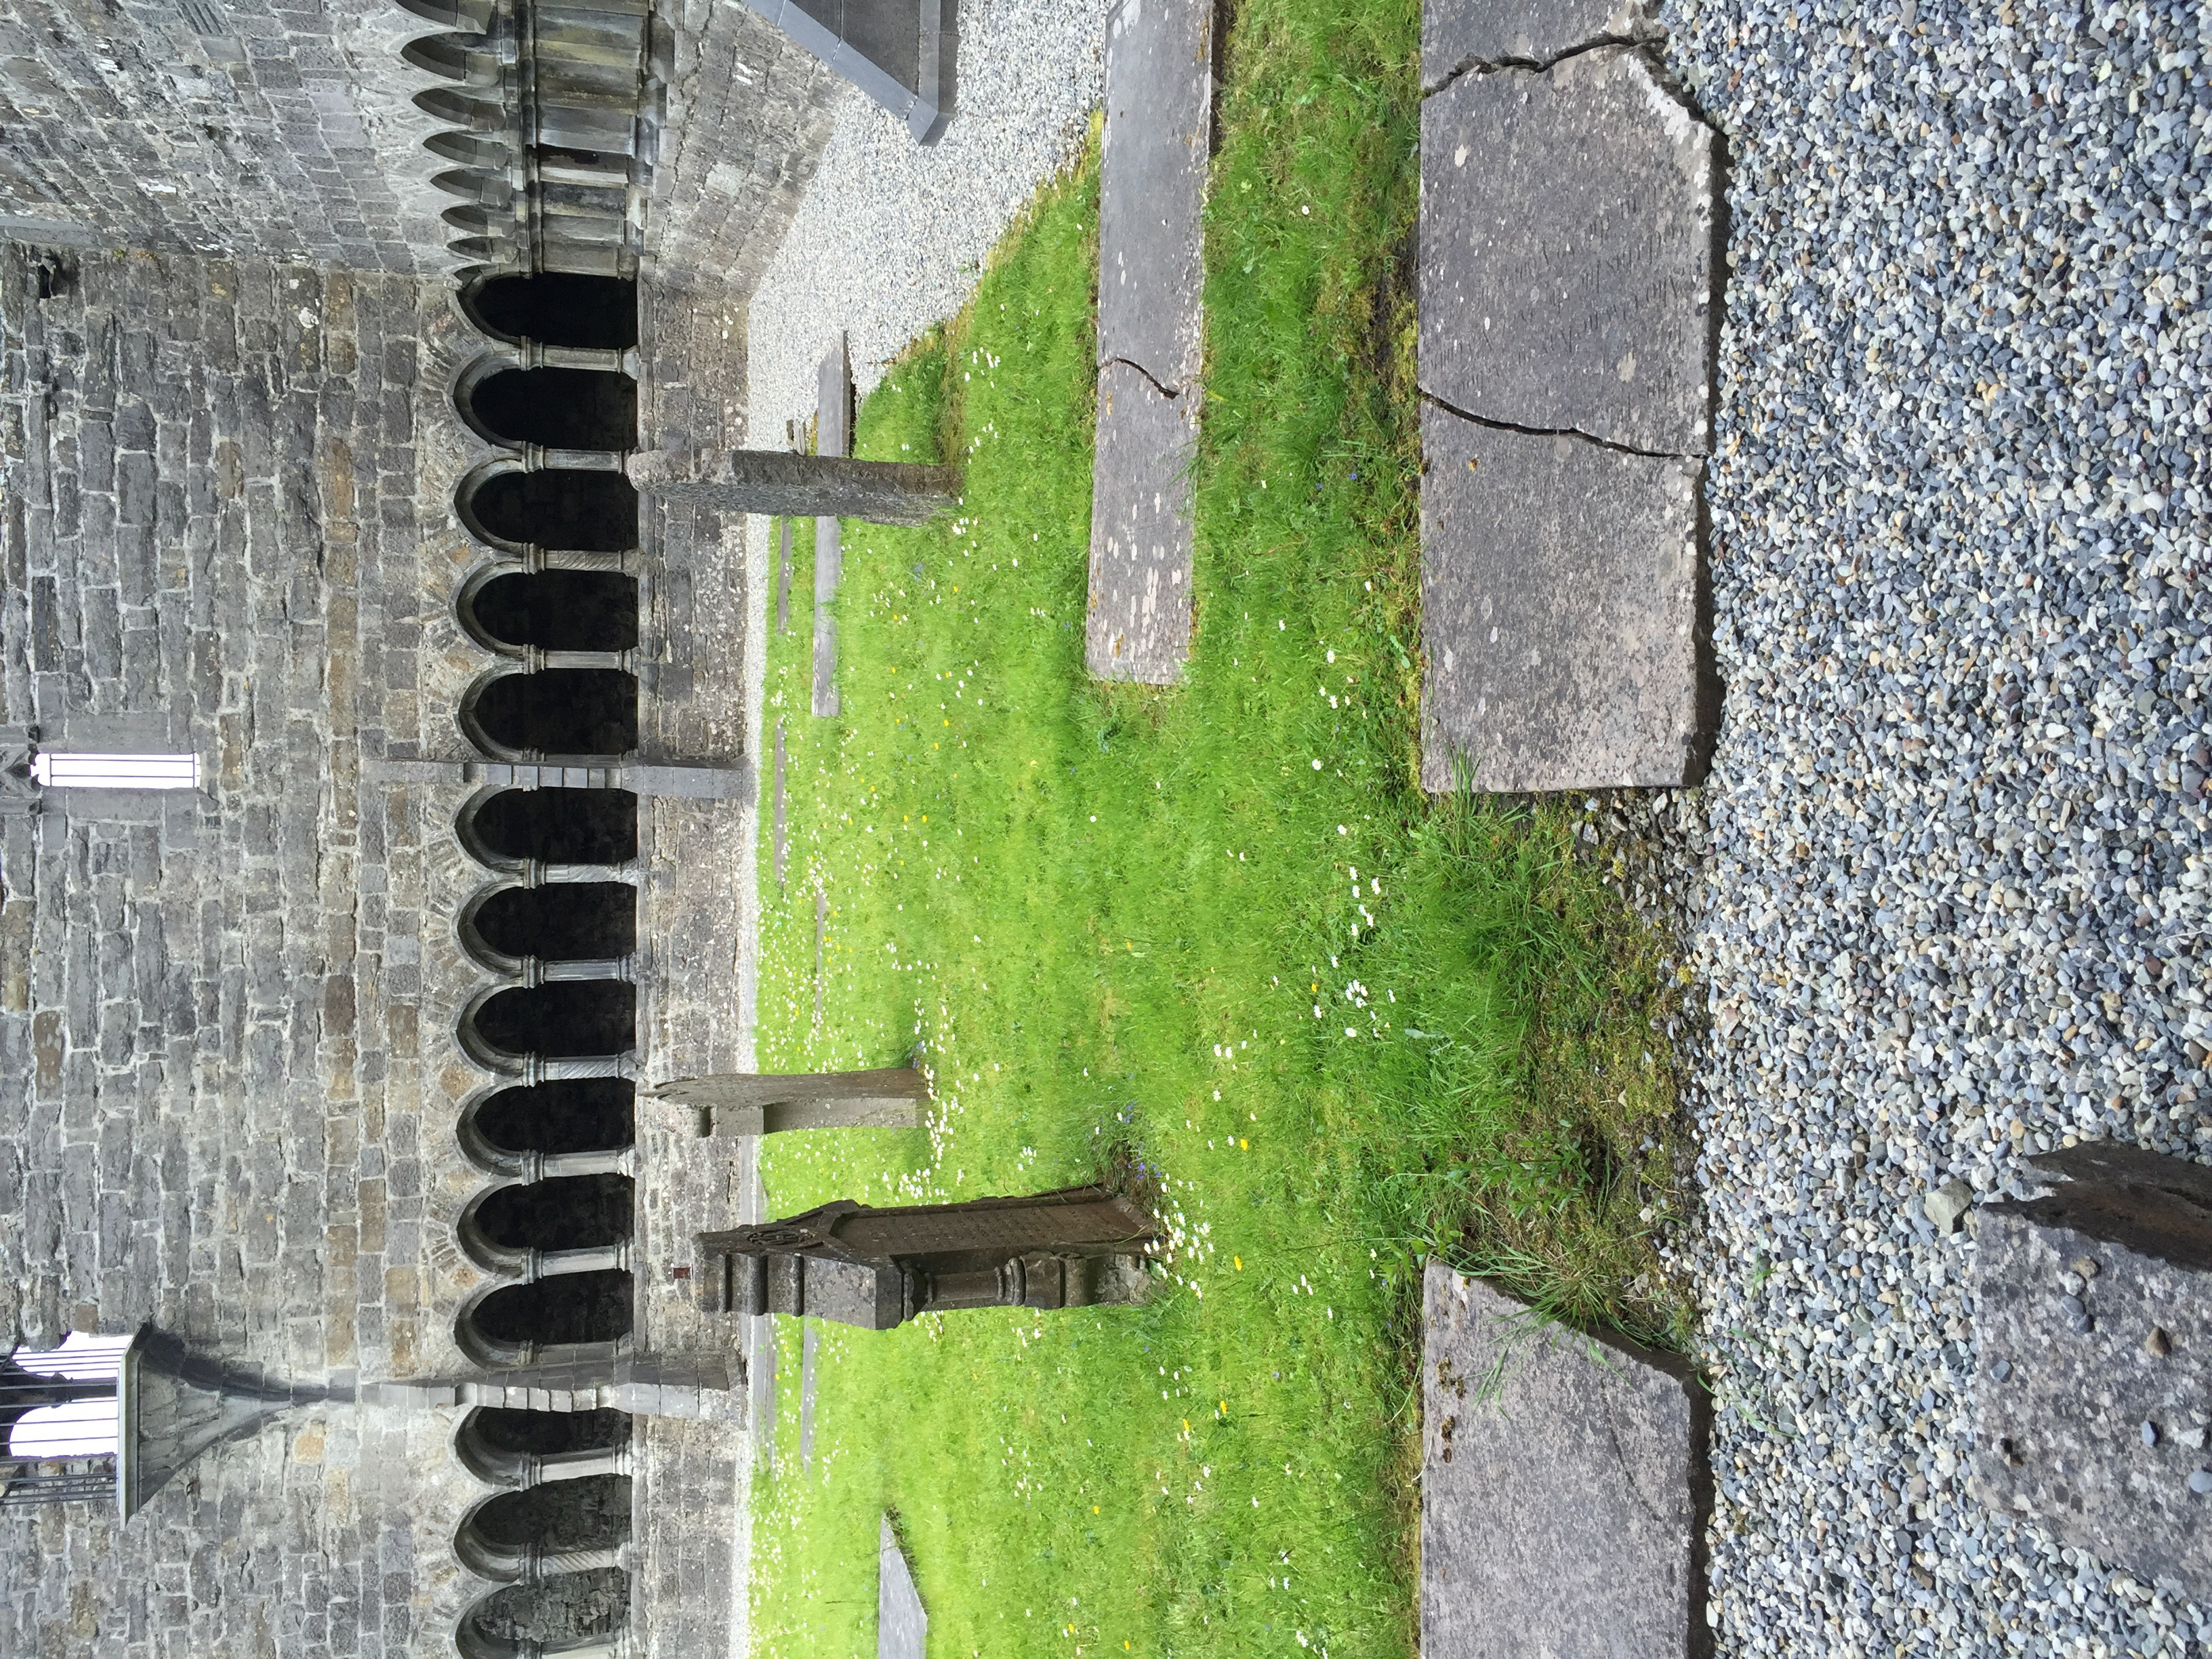 Graves in the cloister.